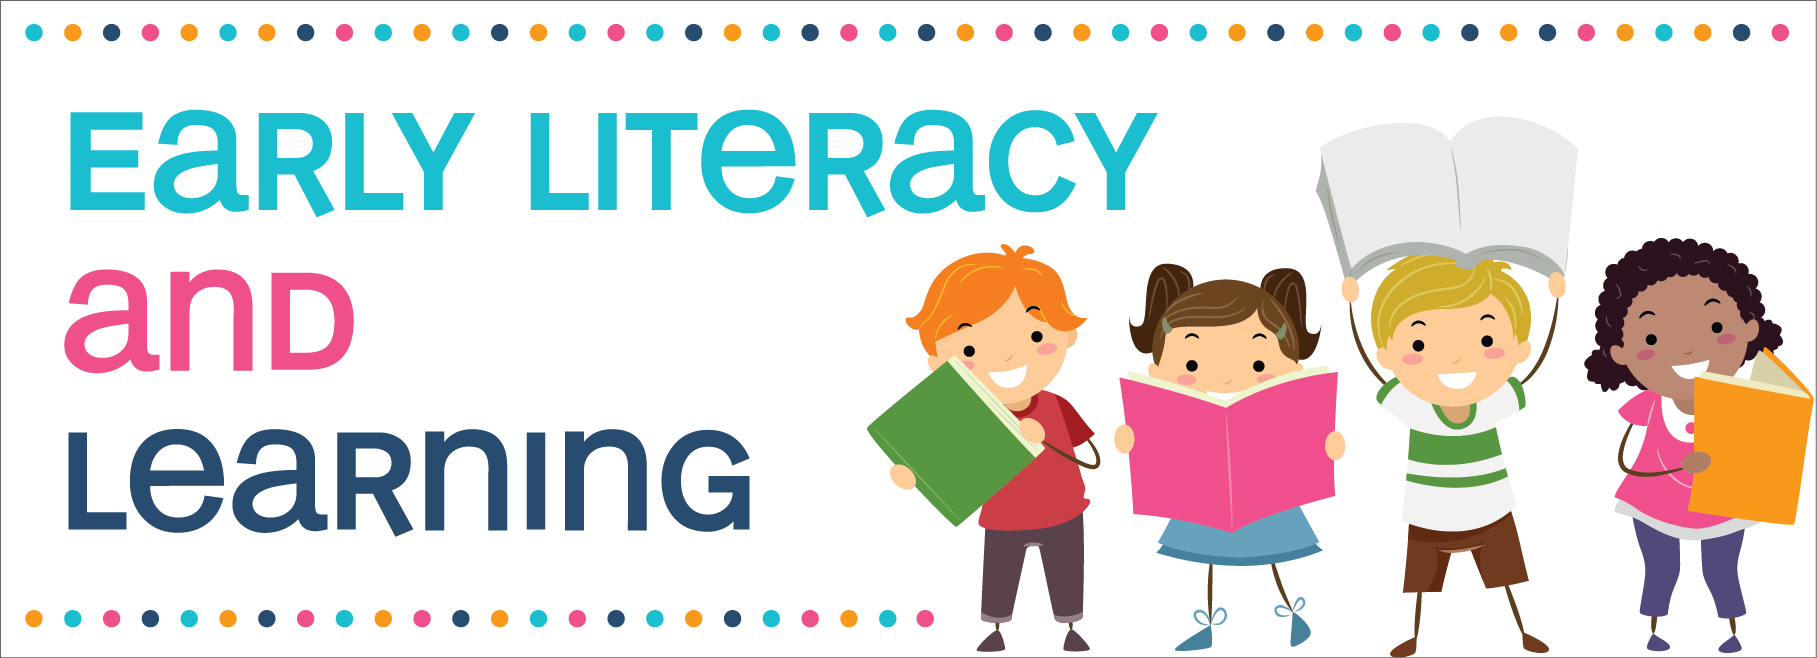 library Literacy clipart emergent literacy. Early learning traverse area.